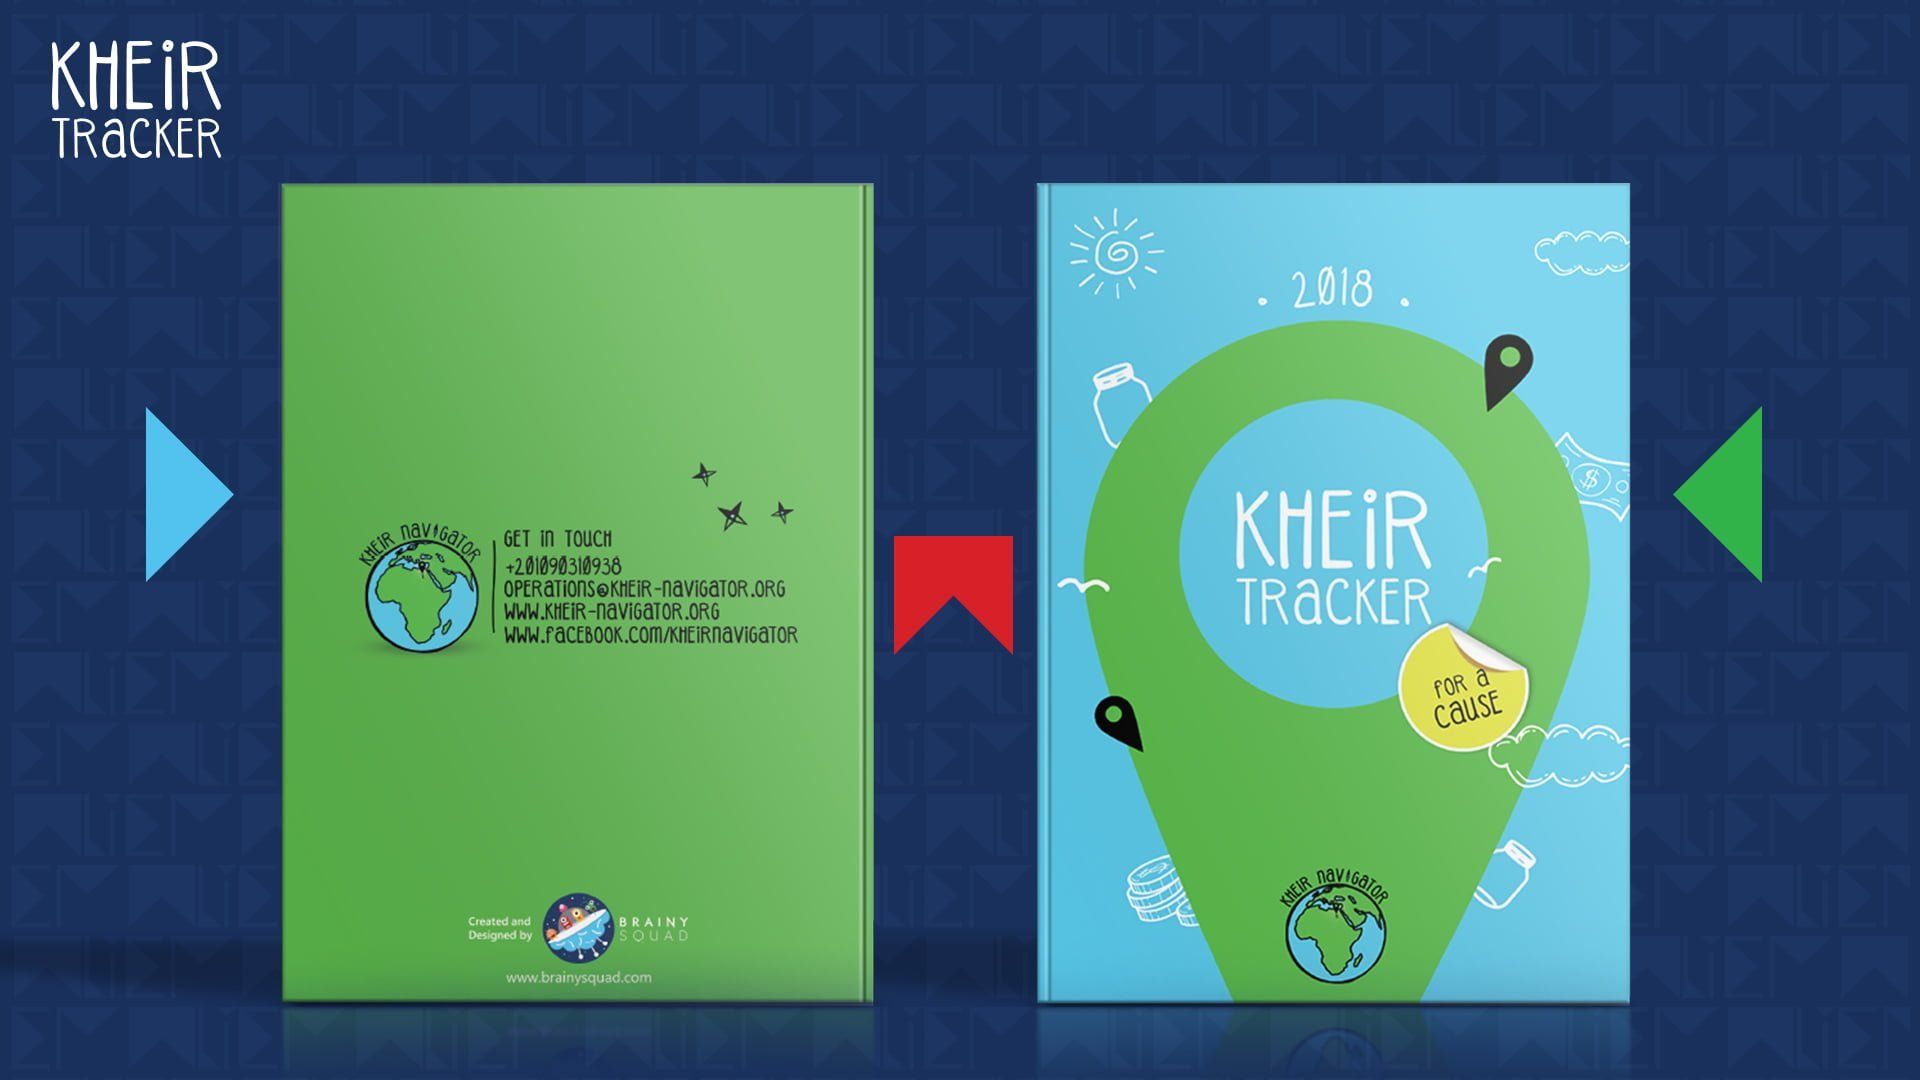 Kheir Tracker